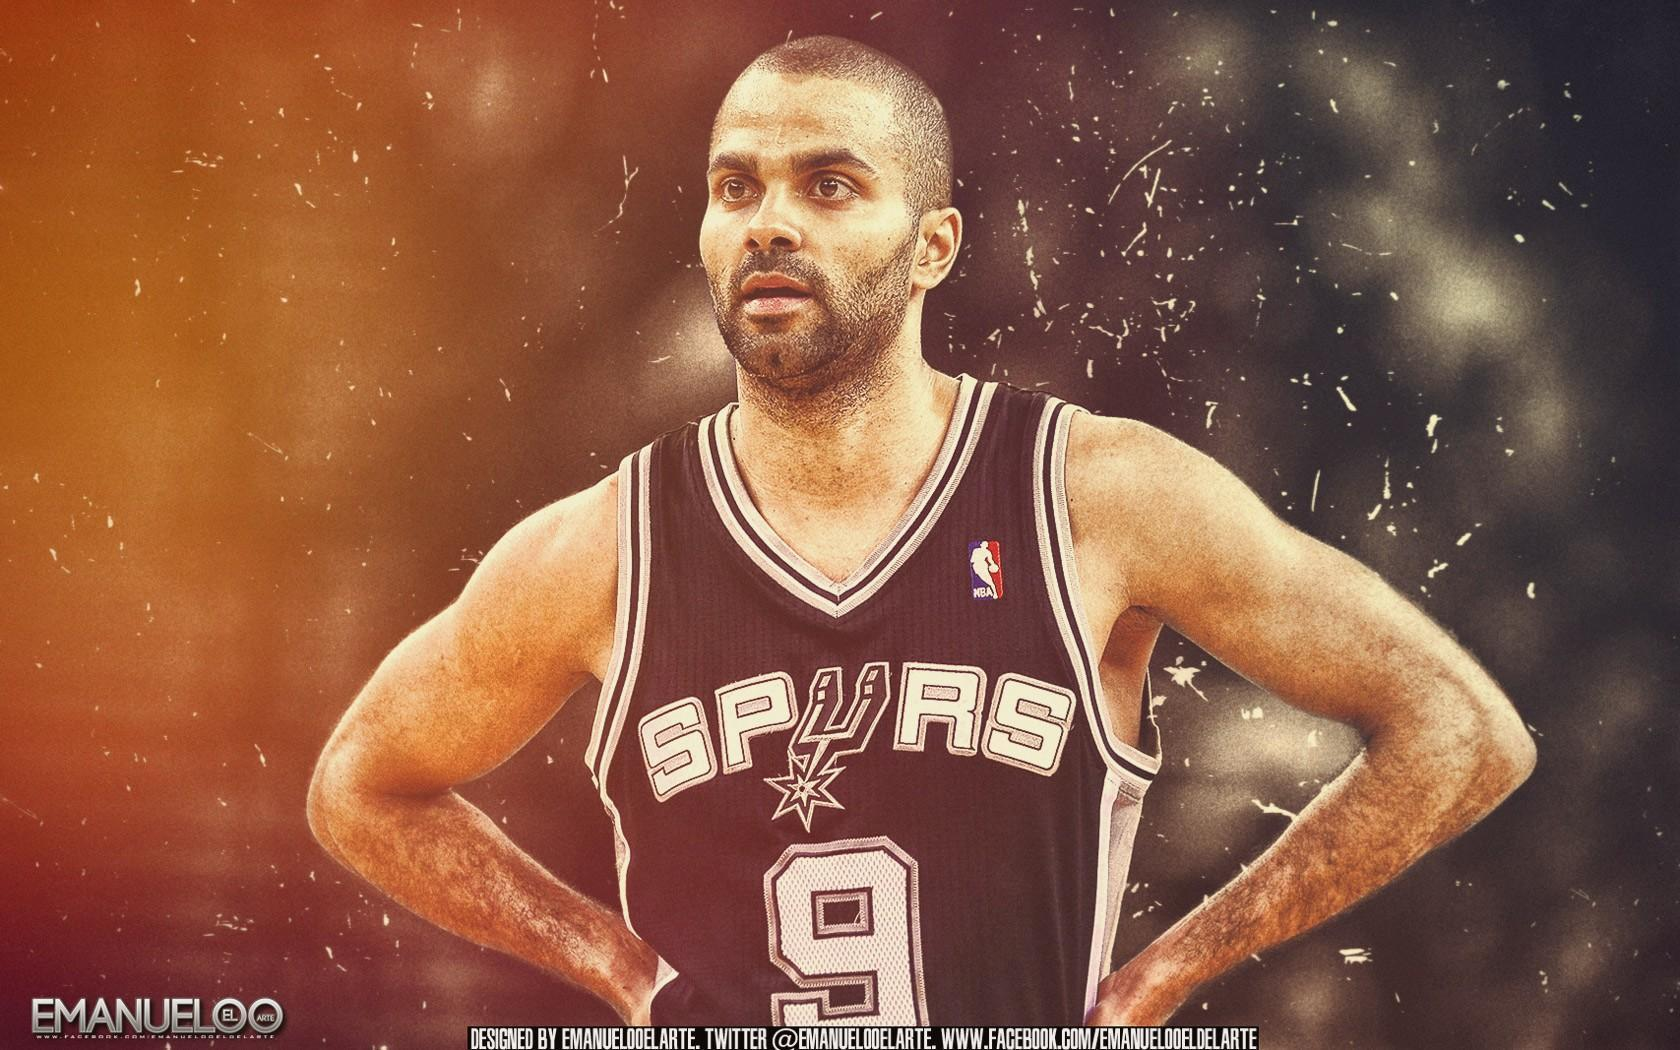 Tony Parker - Bing images